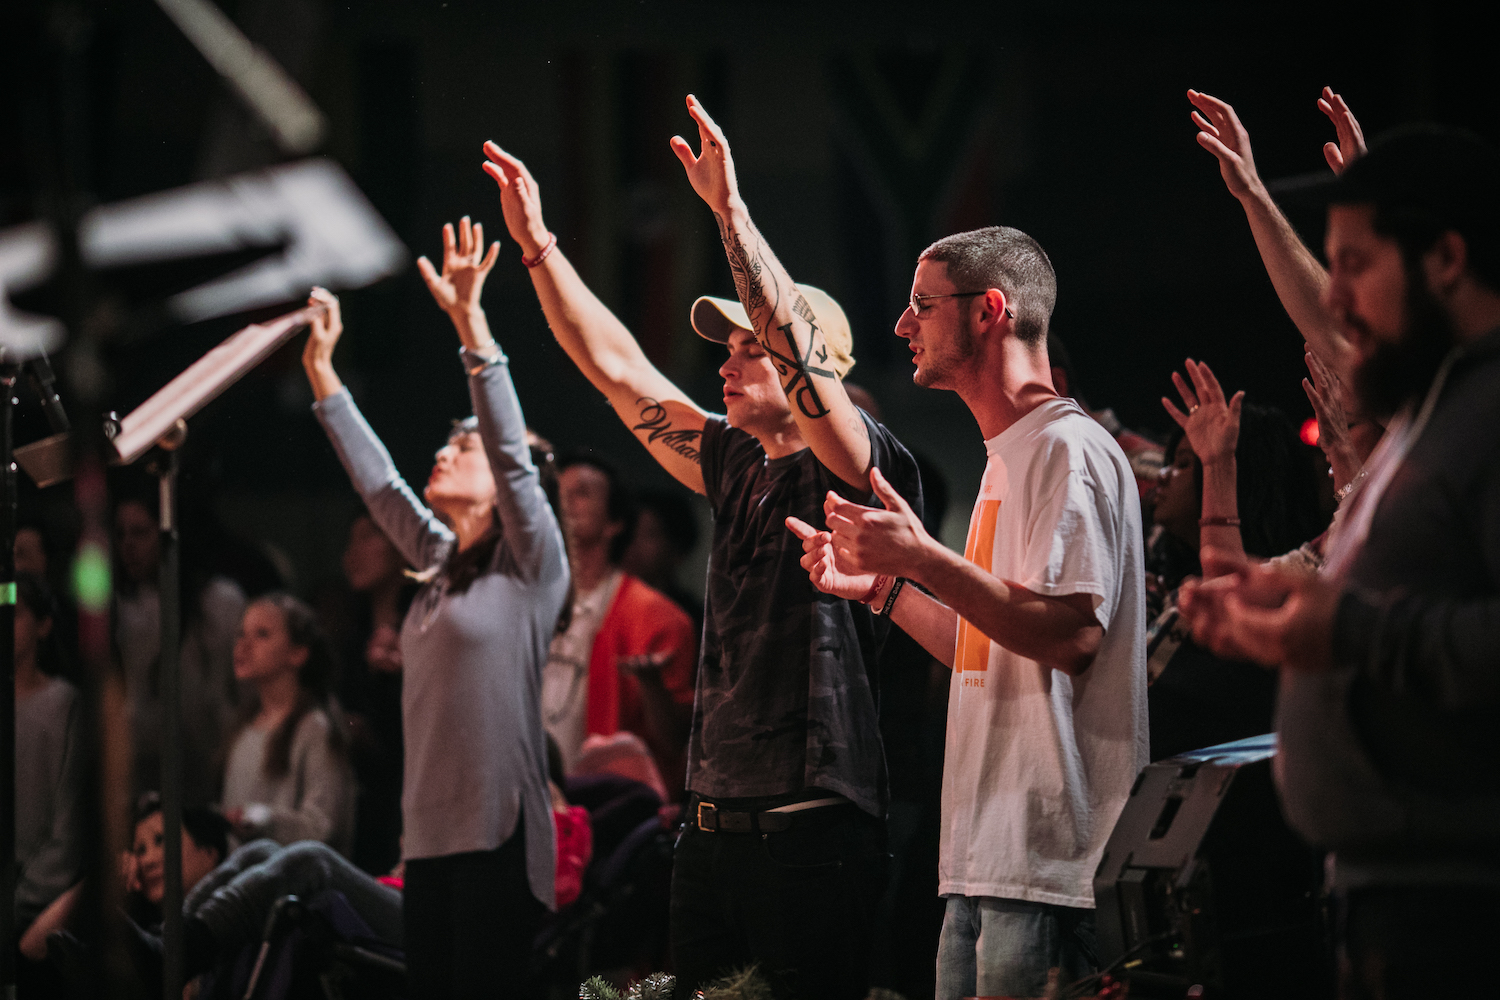 Incredible Time of Surrender During Worship